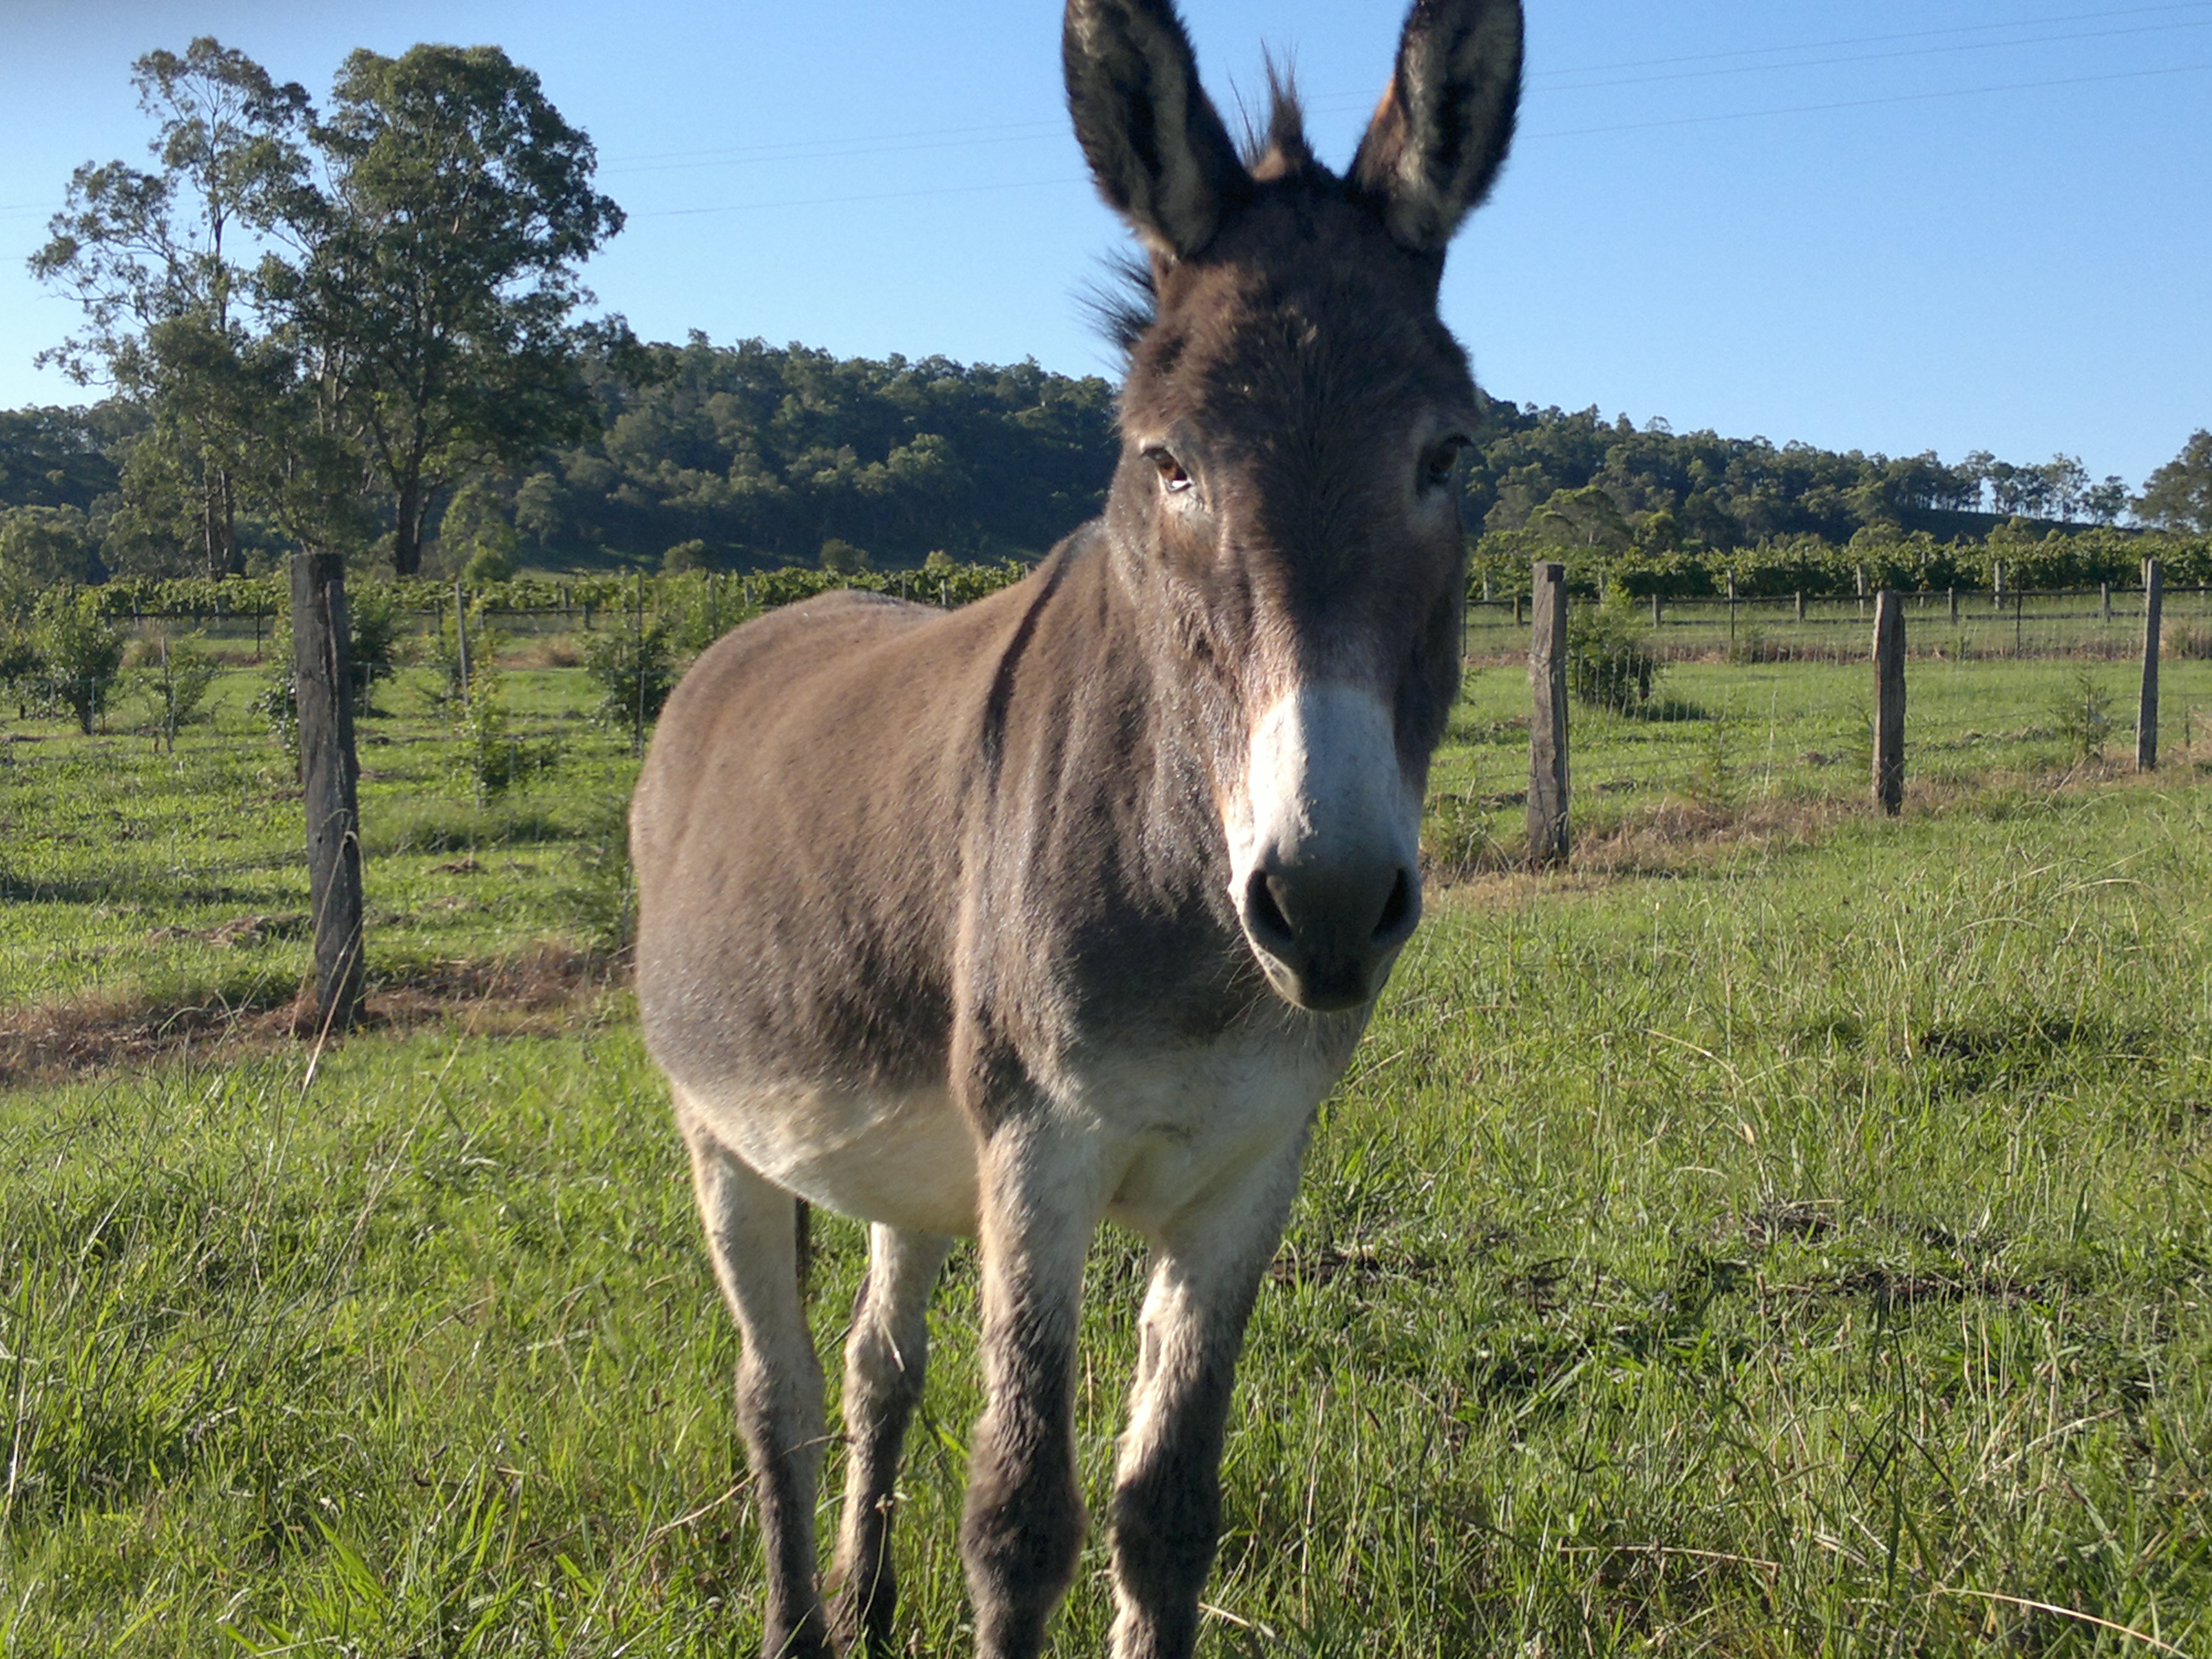 another name for a donkey